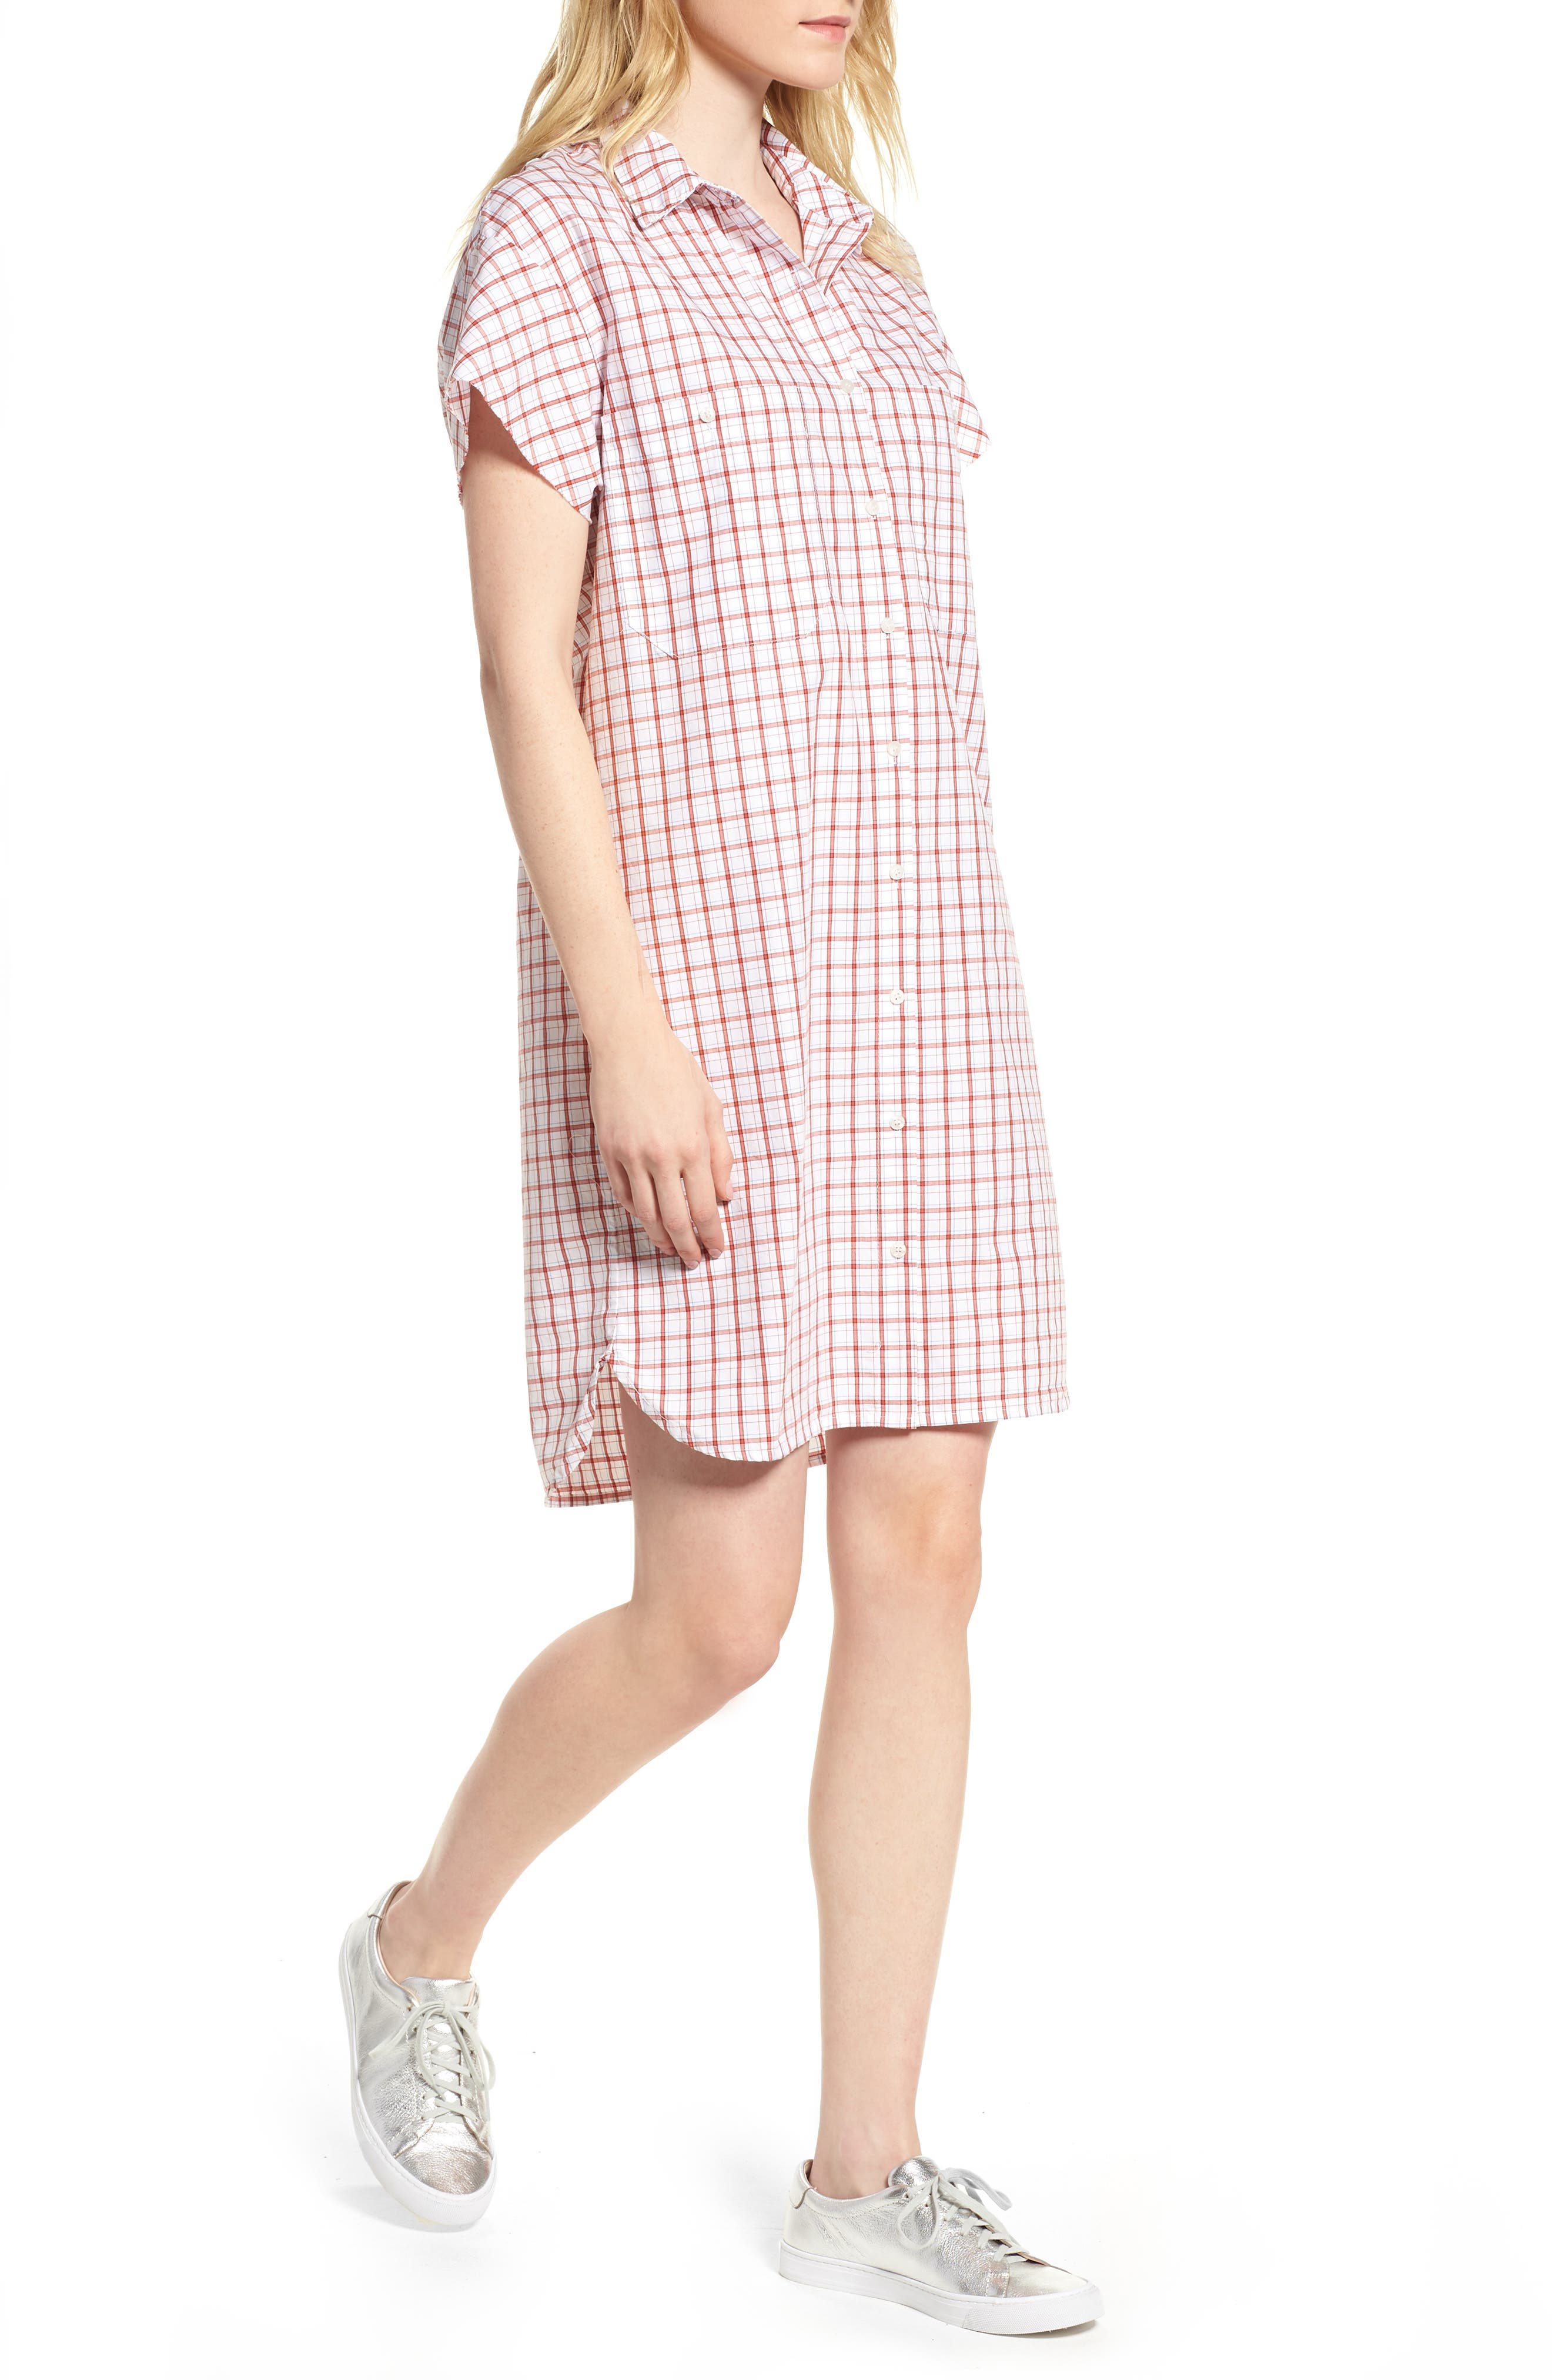 Oxford Shirtdress,                         Main,                         color, Red Plaid